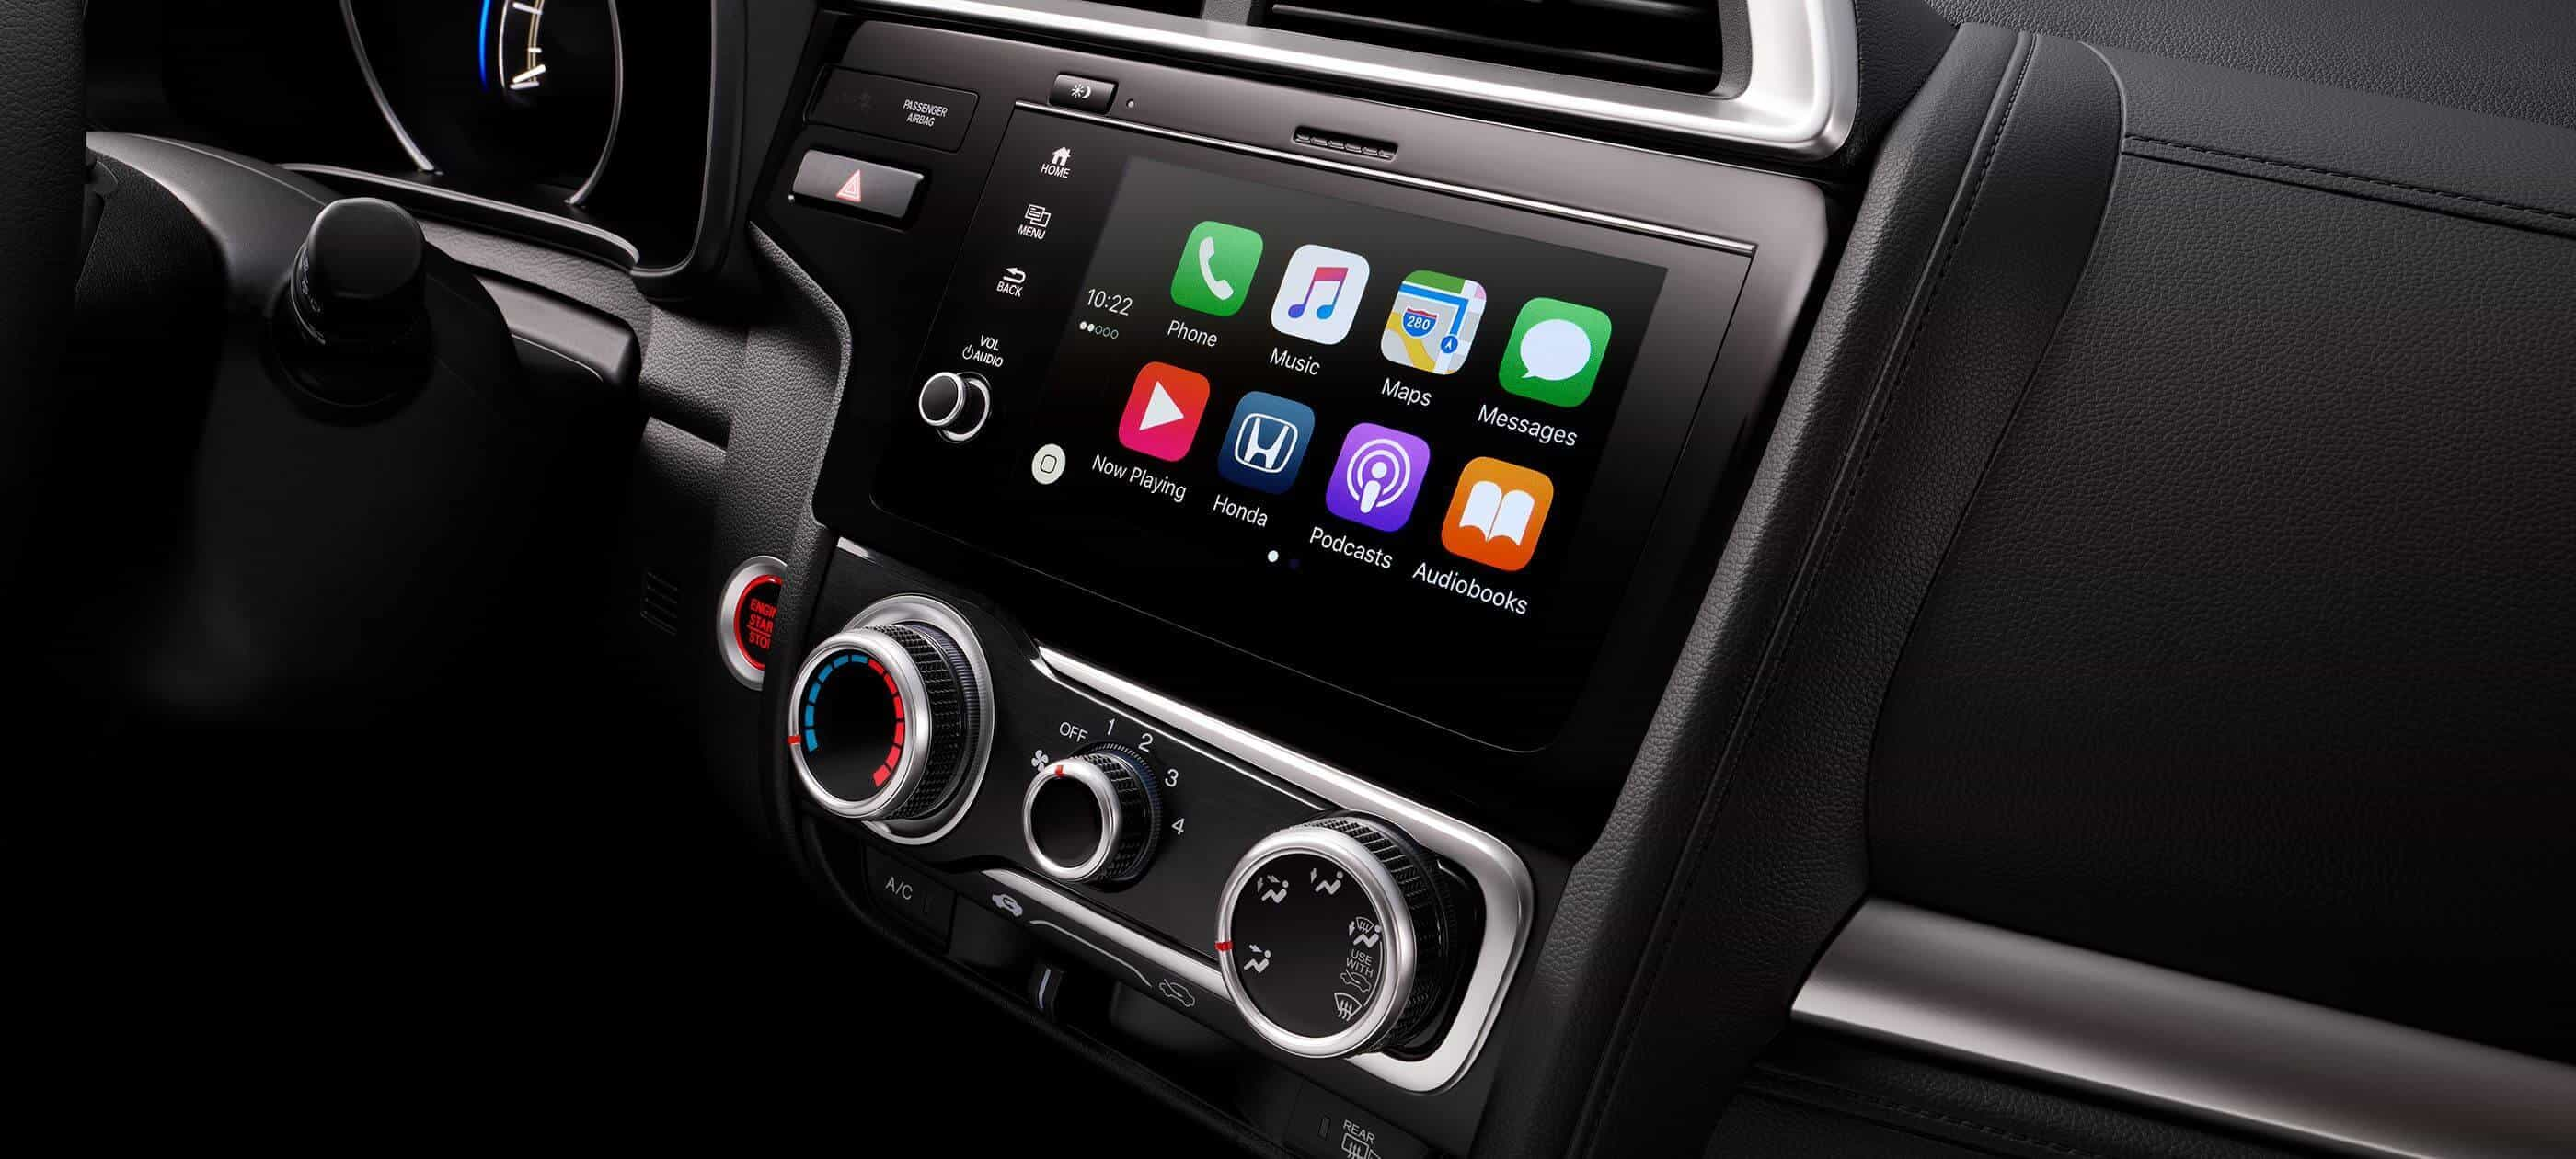 Integración con Apple CarPlay<sup>®</sup>